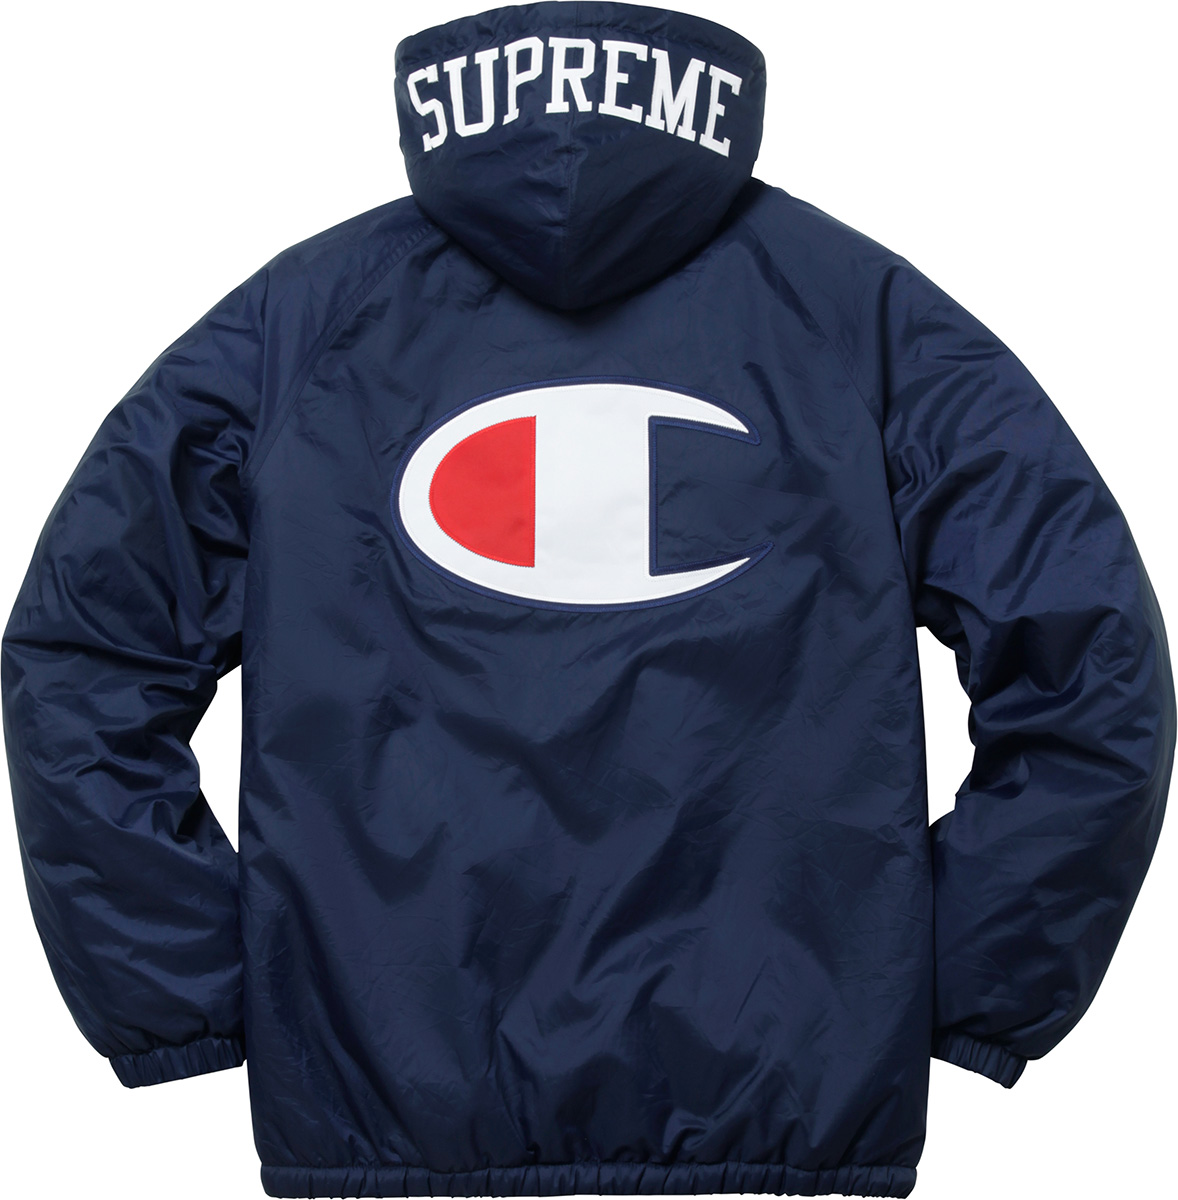 supreme-2017aw-fall-winter-supreme-champion-sherpa-lined-hooded-jacket